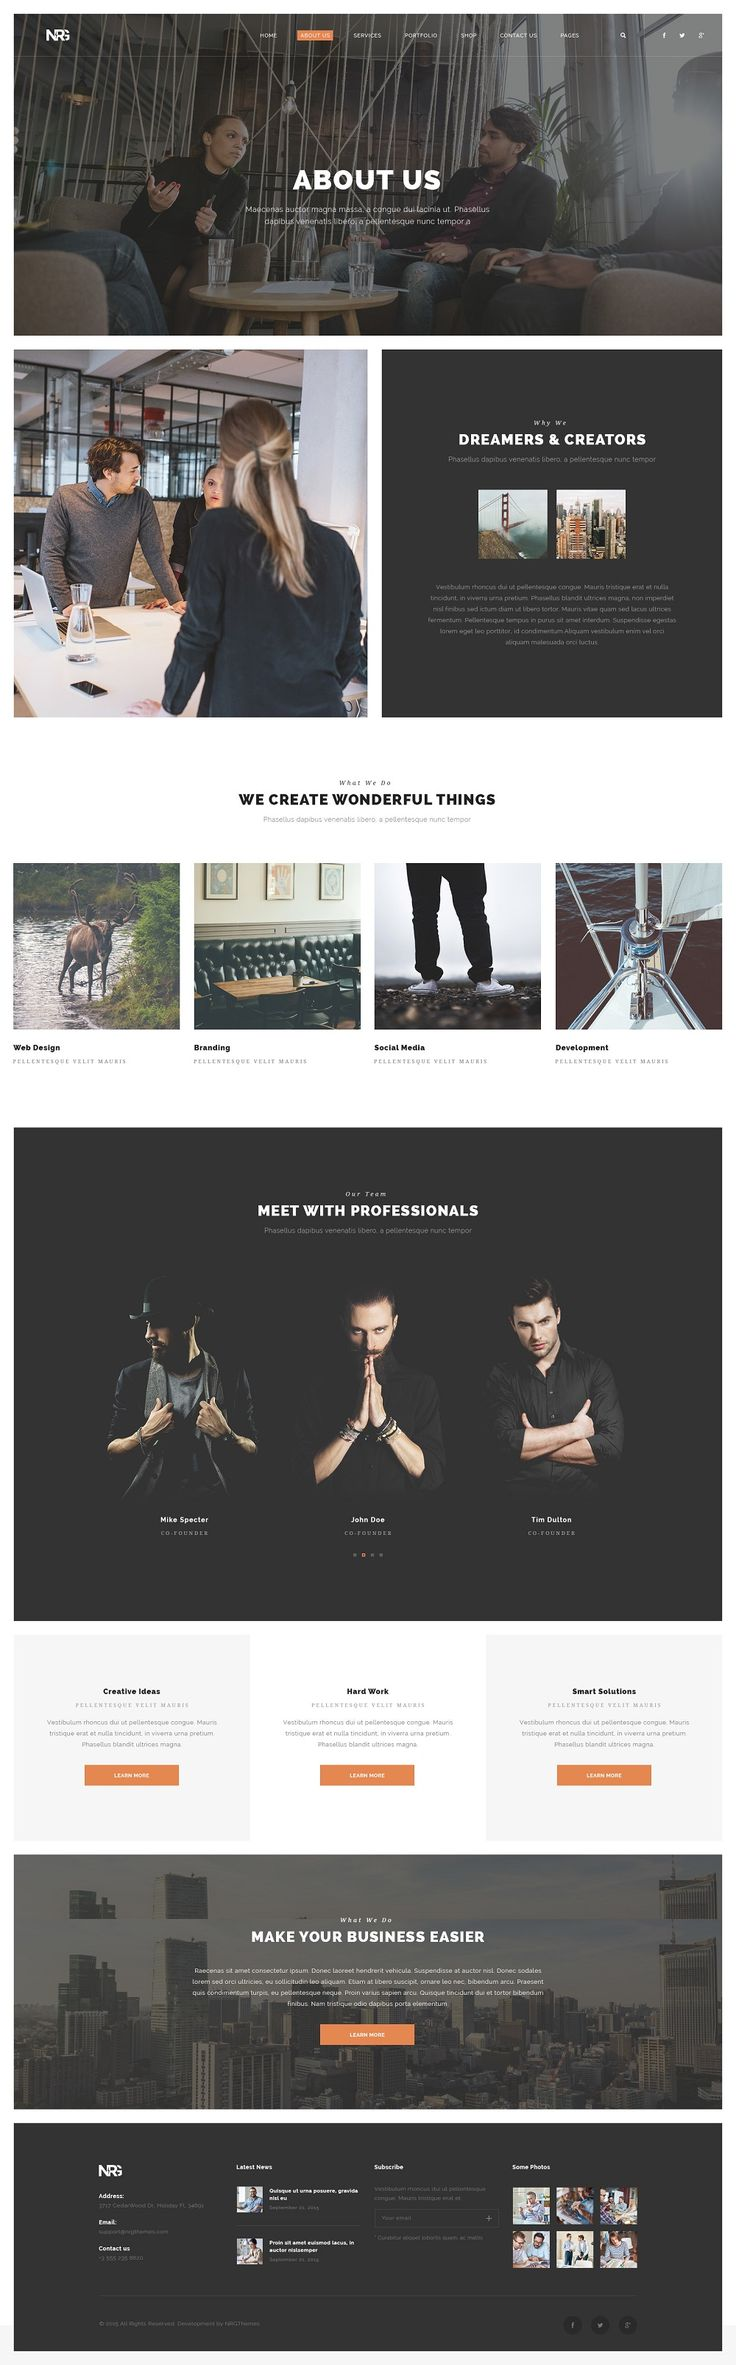 22 Best Wordpress Images On Pinterest Wordpress Template